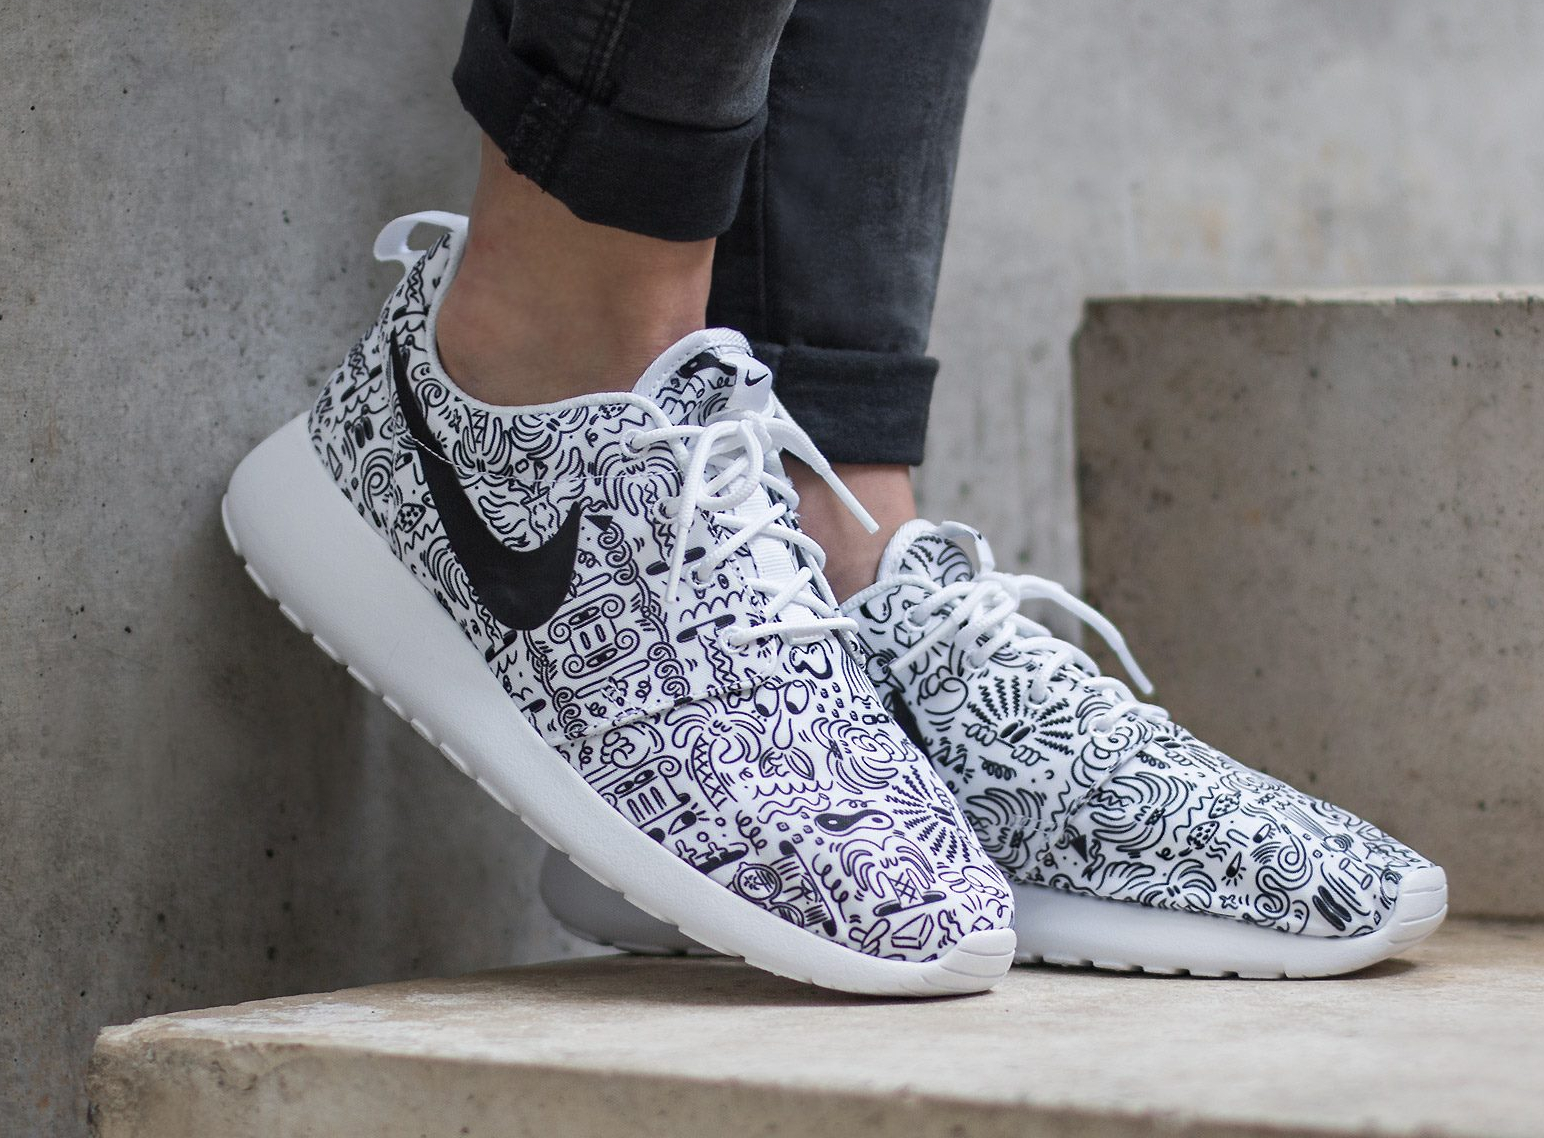 Basket Steven Harrington x Nike Roshe Run Print 'Doodle' (2)